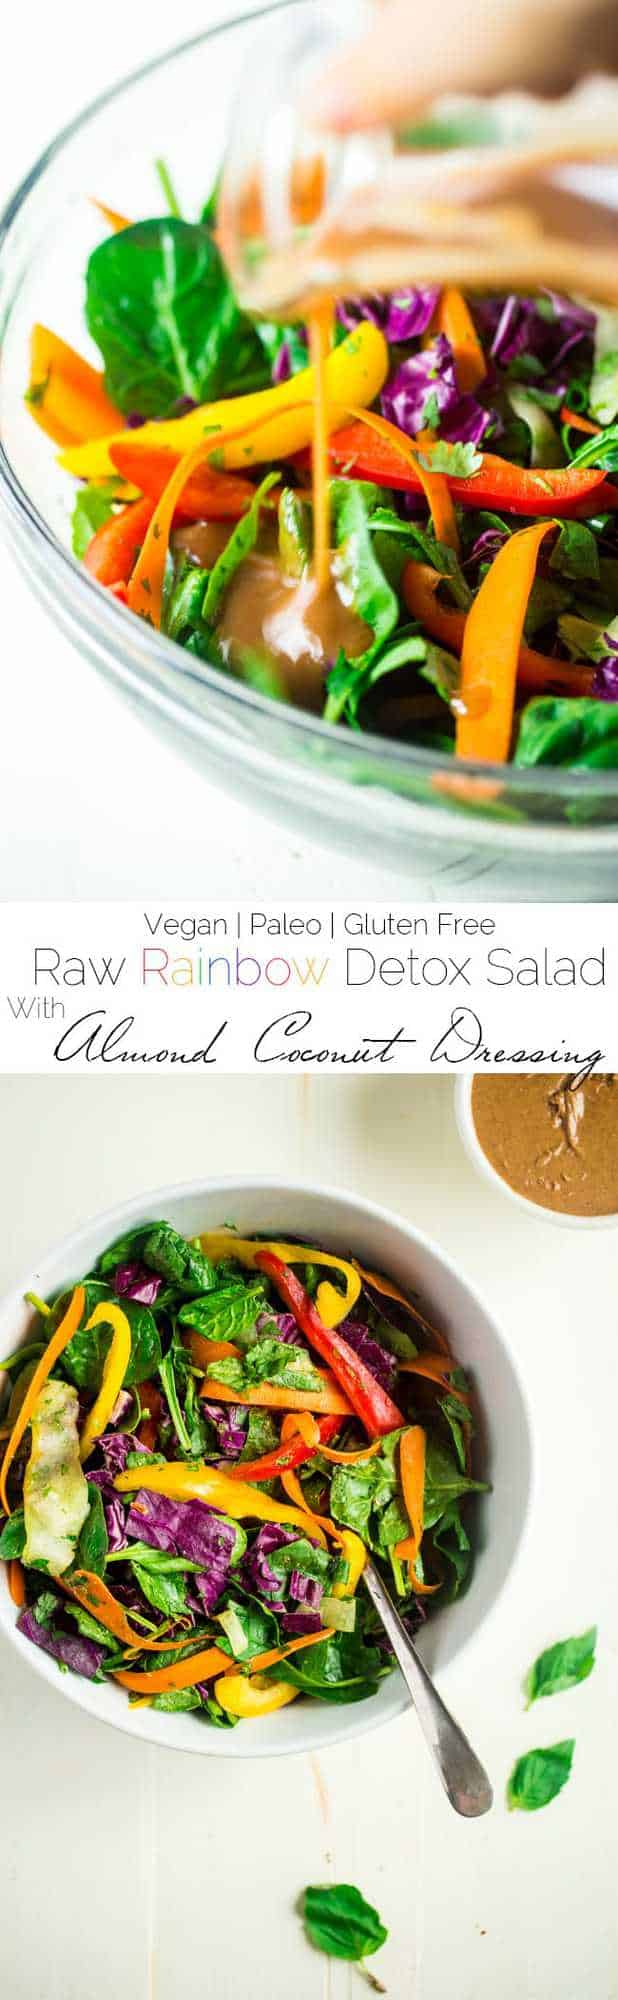 Paleo and Vegan Raw Summer Roll Salad with Almond Vinaigrette - This easy, raw salad tastes just like a summer roll, but without all the work! It's a healthy meal that's ready in 15 minutes and under 250 calories! Whole30 option included! | Foodfaithfitness.com | @FoodFaithFit